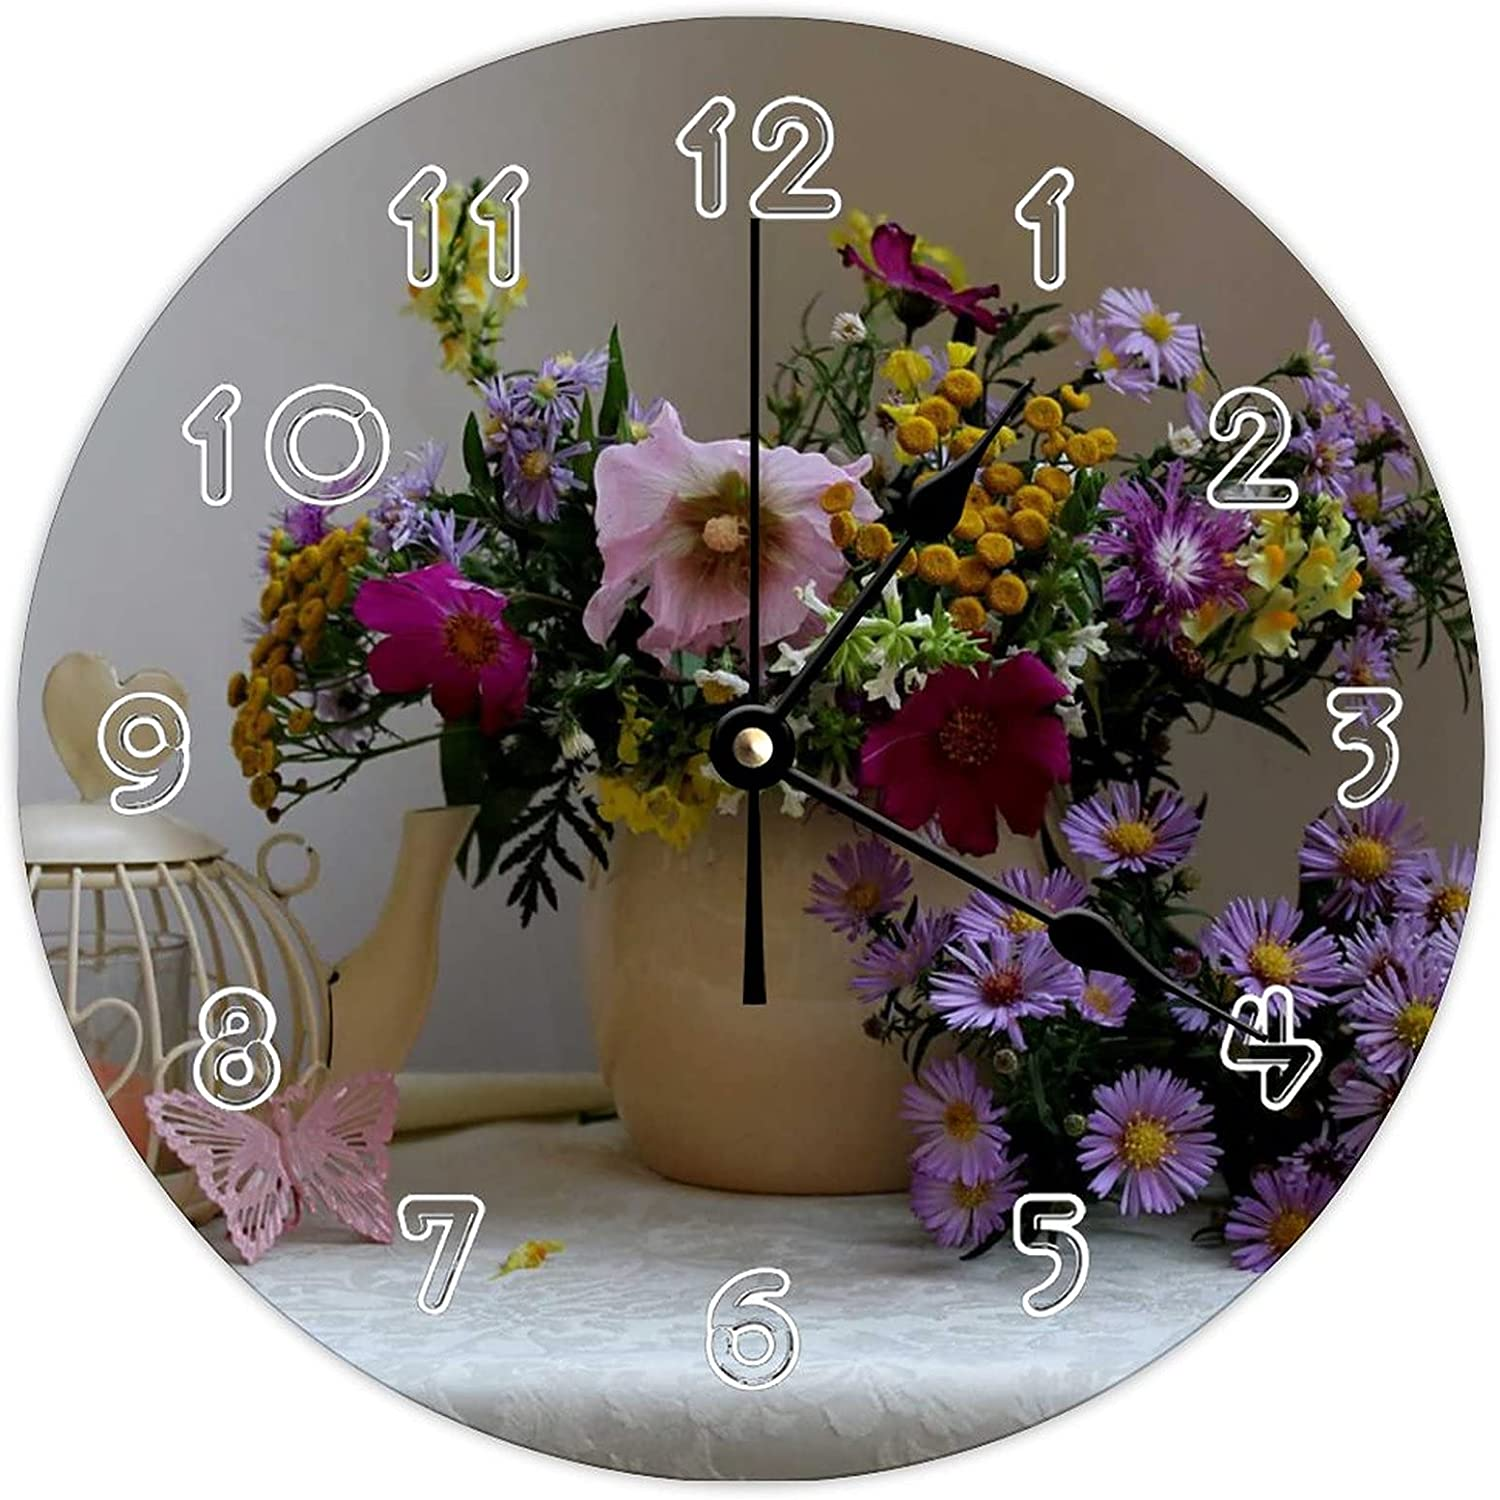 Ticking Brand Cheap Sale Venue Silent Clock Still 67% OFF of fixed price Life Bouquets Cosmos Asters Ket Plant